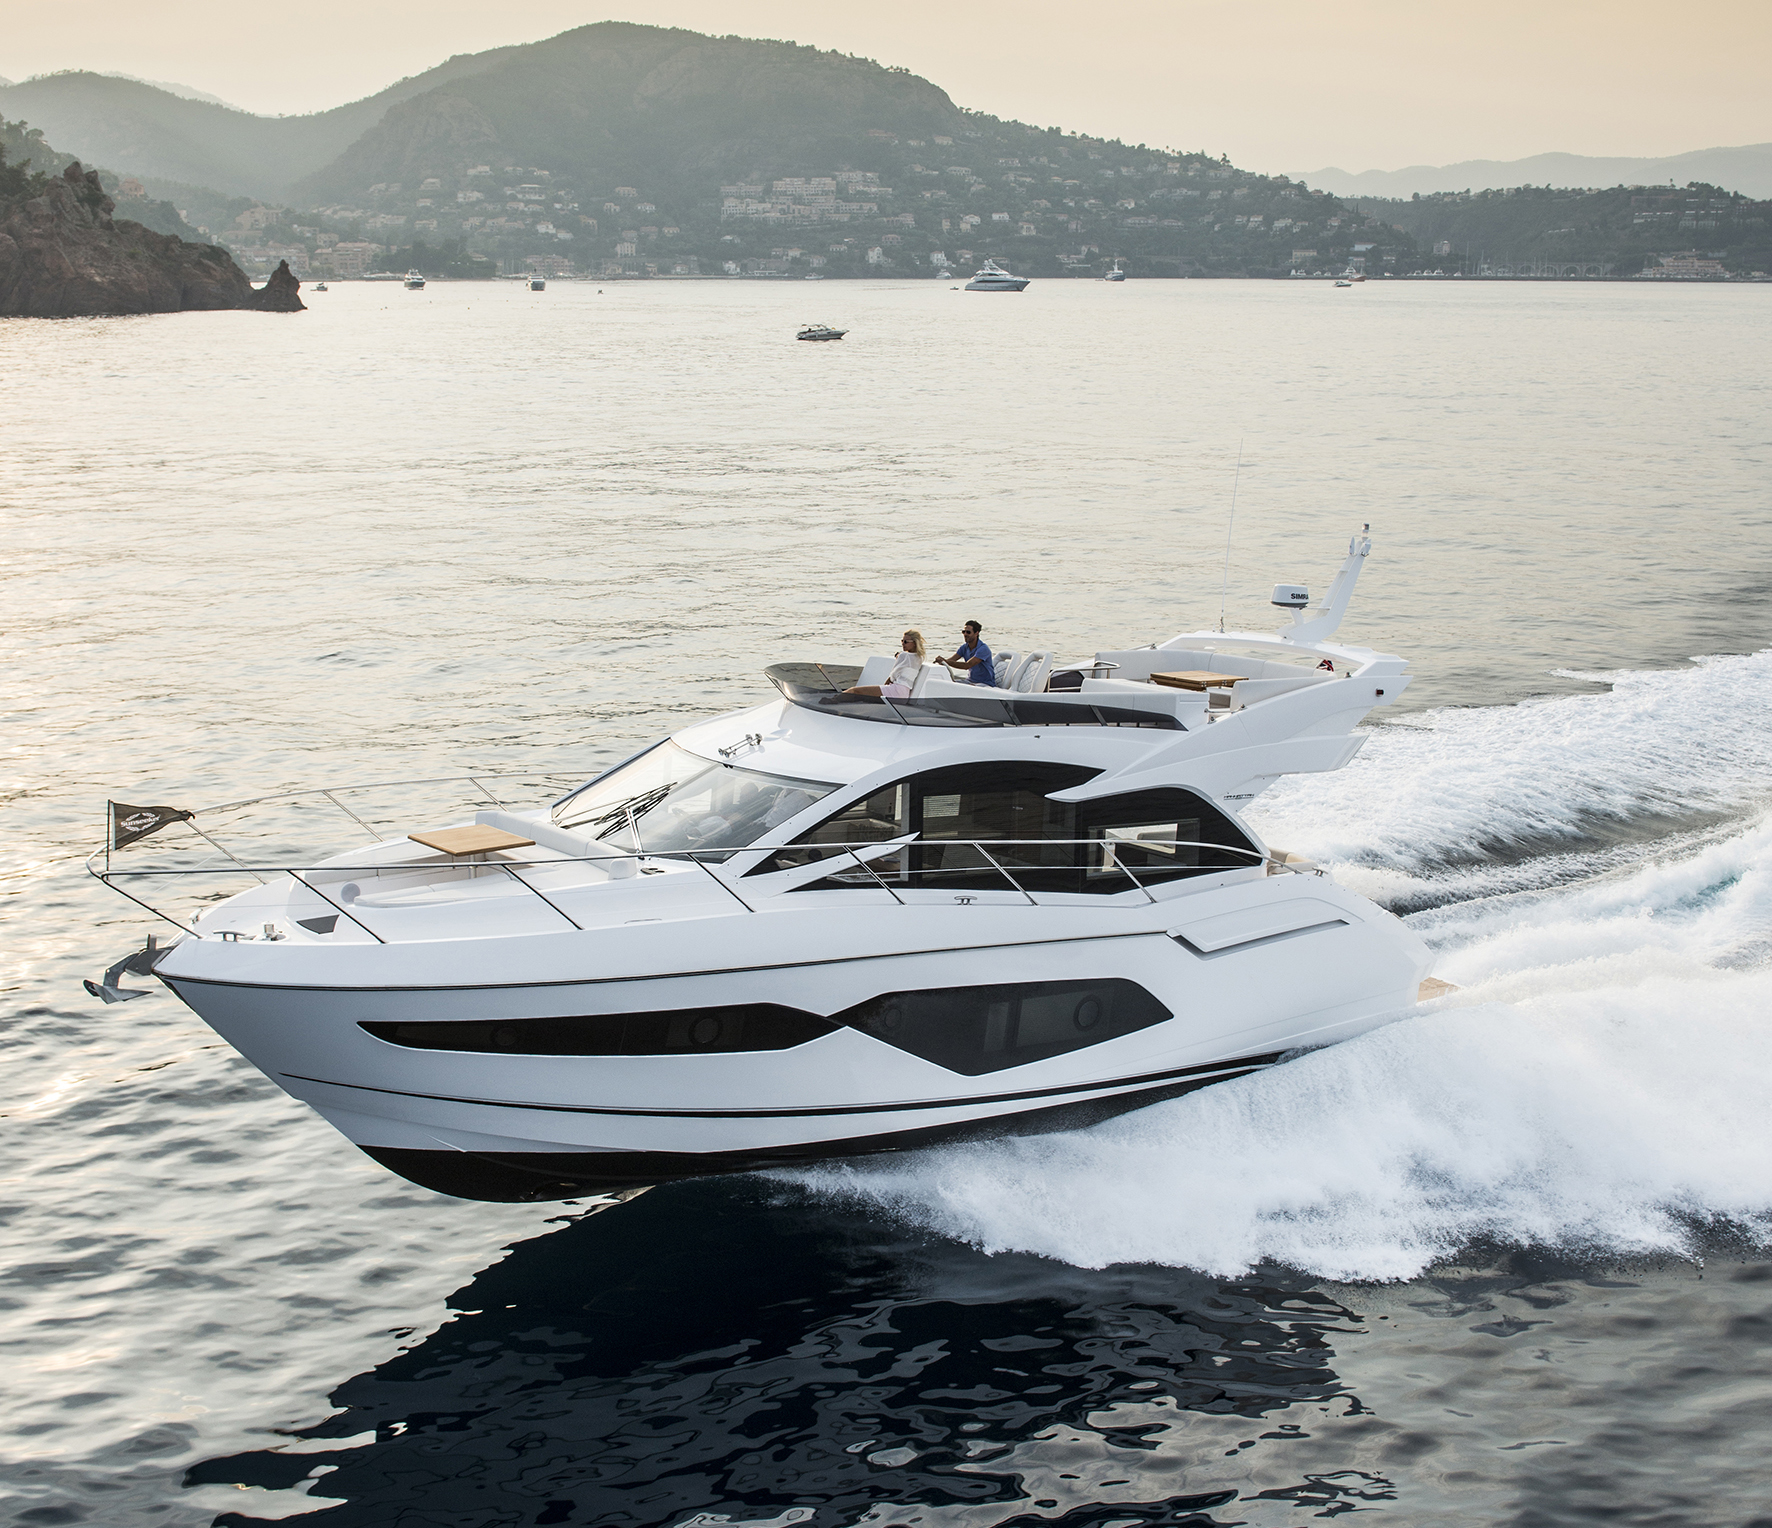 Sunseeker Manhattan 52 is named company's fastest selling model - YBW